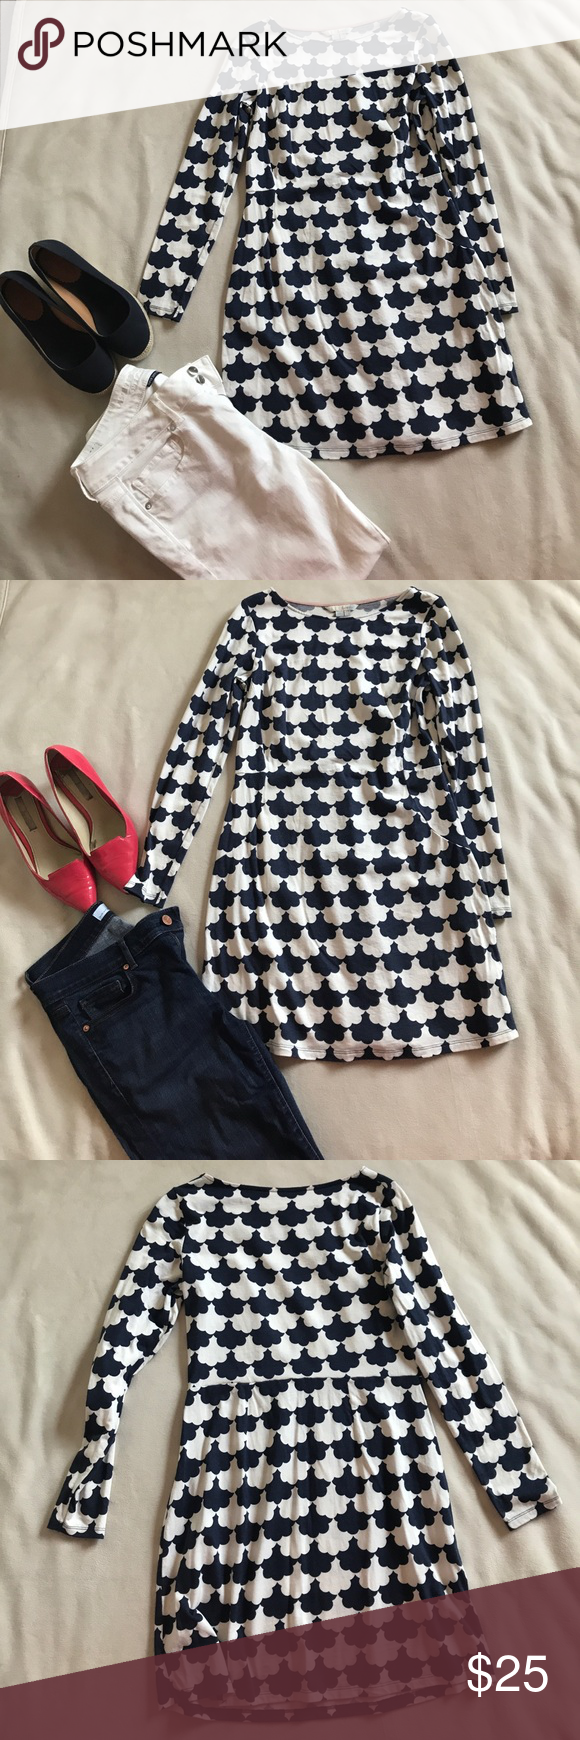 Boden cotton blend tunic. Super cute light weight tunic that can be worn alone as a dress or with jeans. Length is 31 inches long. Navy and white Boden Dresses Mini